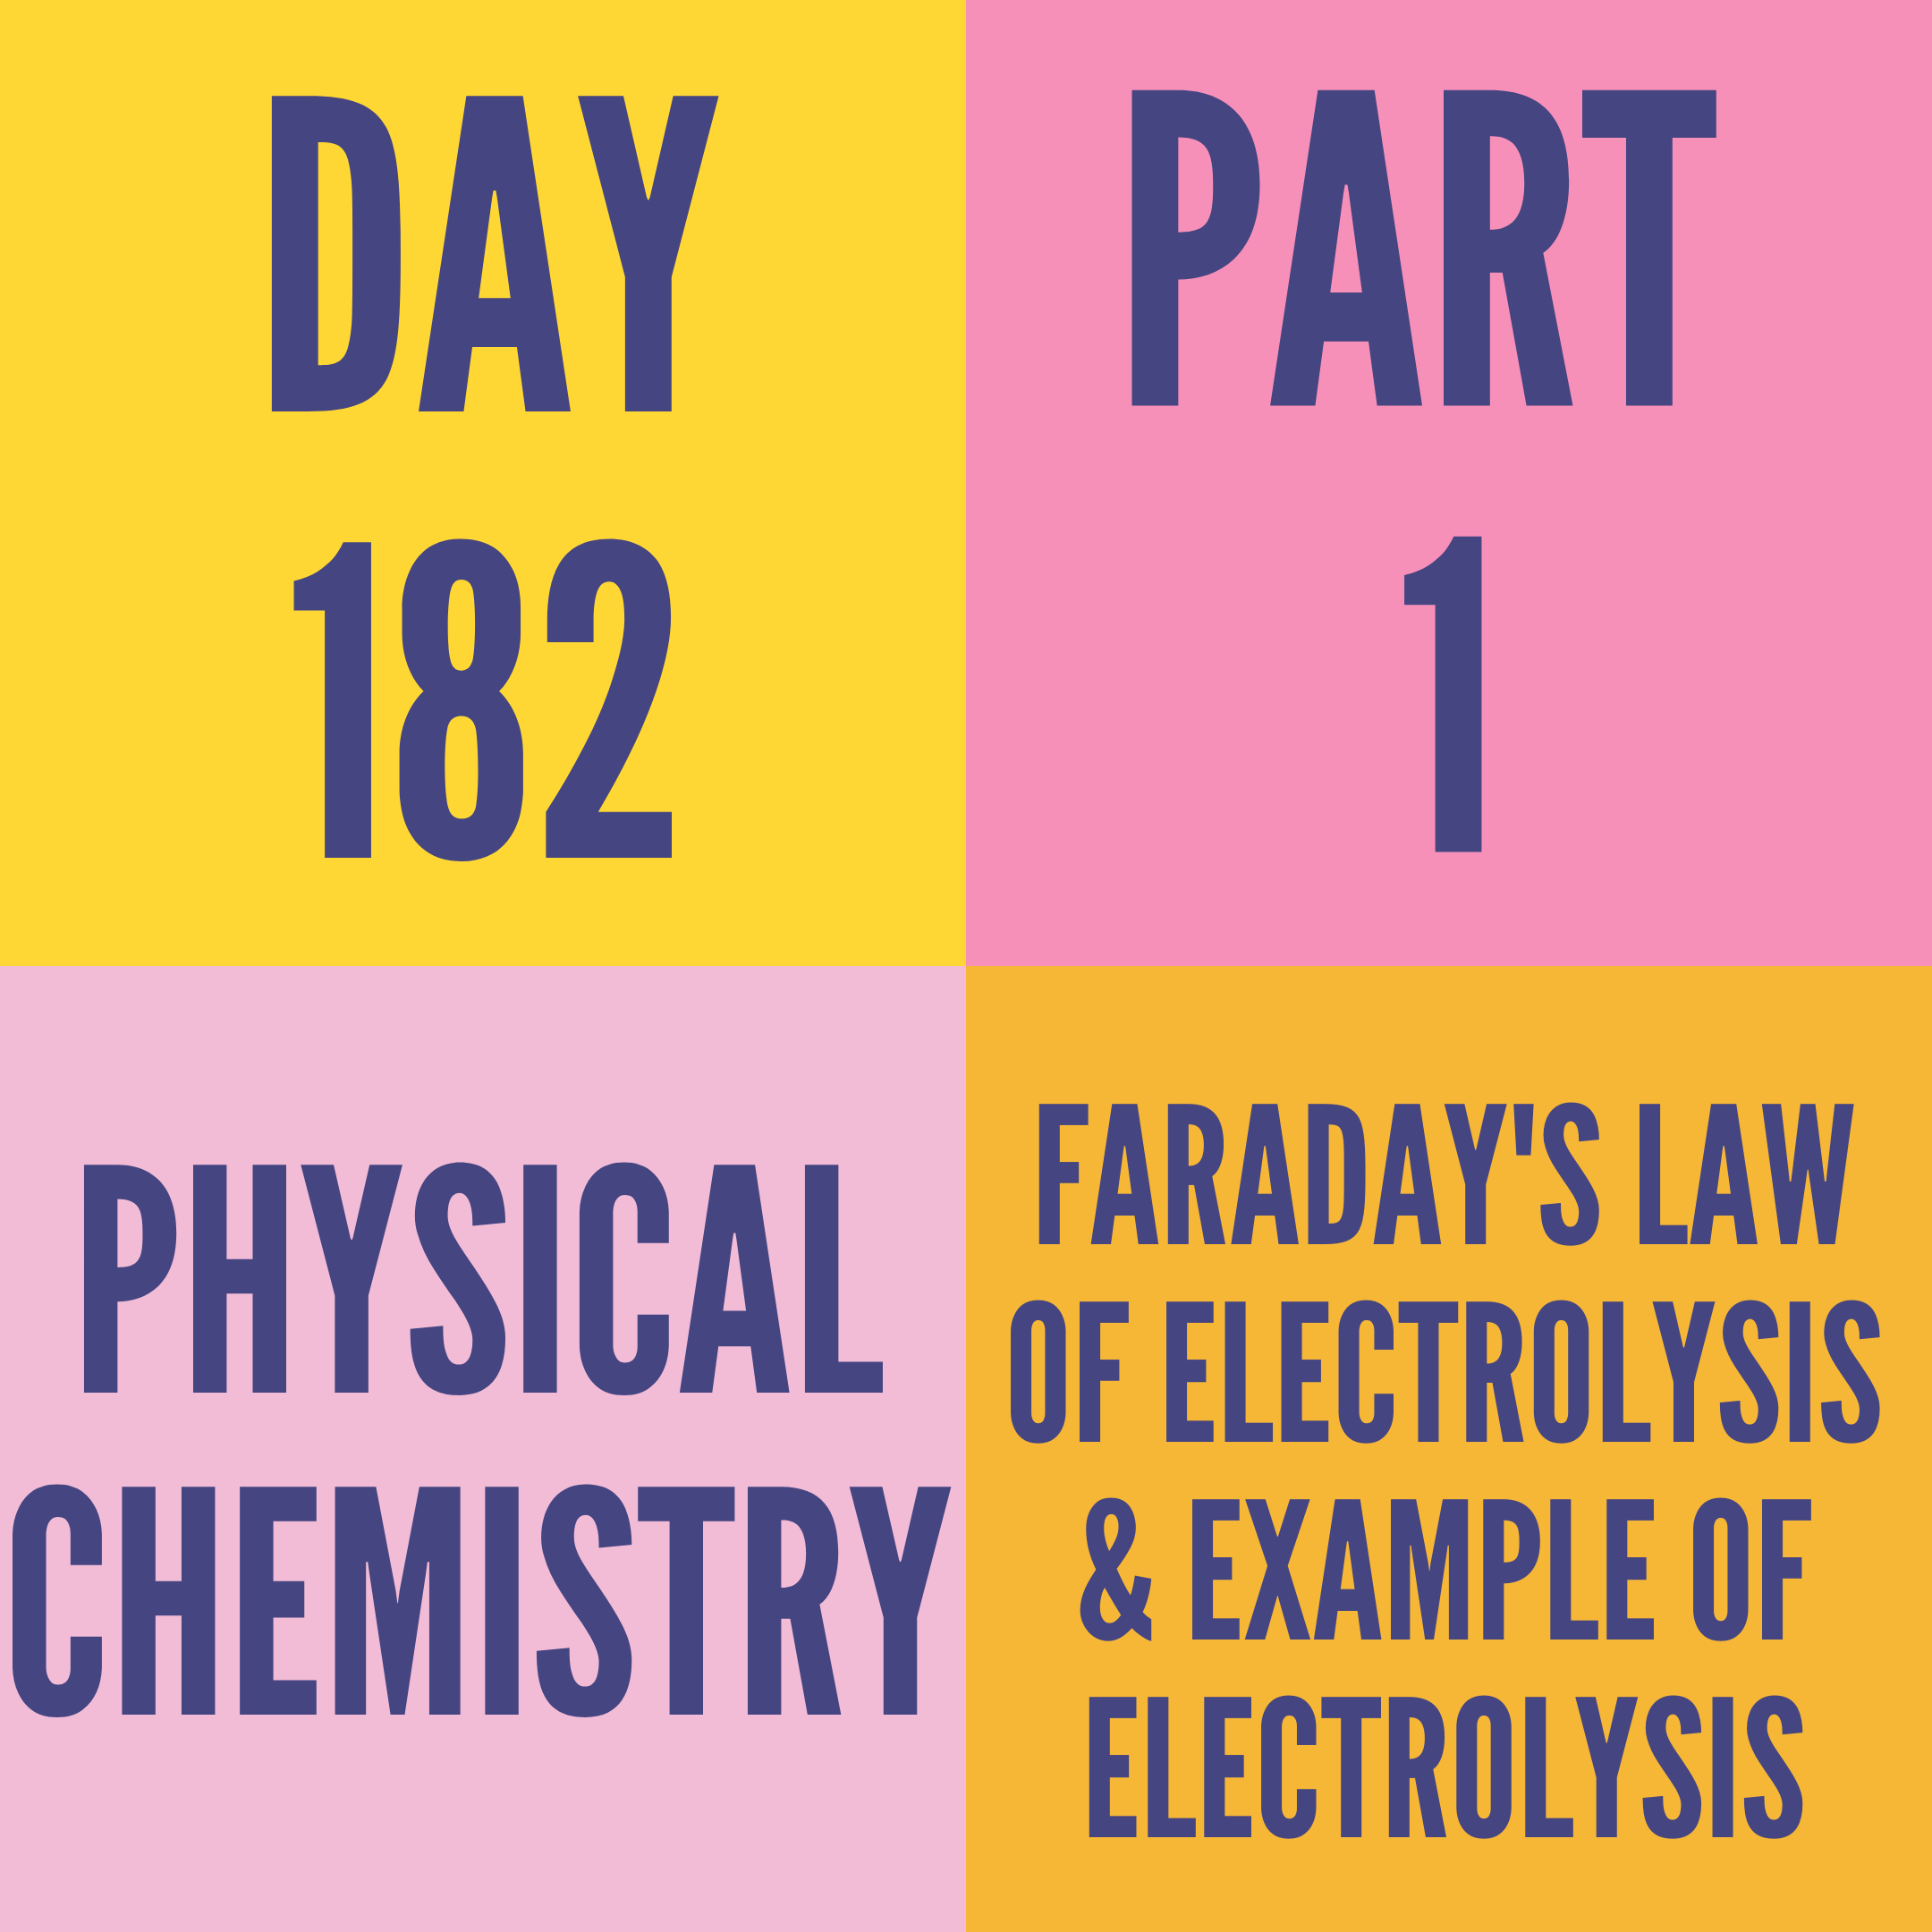 DAY-182 PART-1 FARADAY'S LAW OF ELECTROLYSIS & EXAMPLE OF ELECTROLYSIS